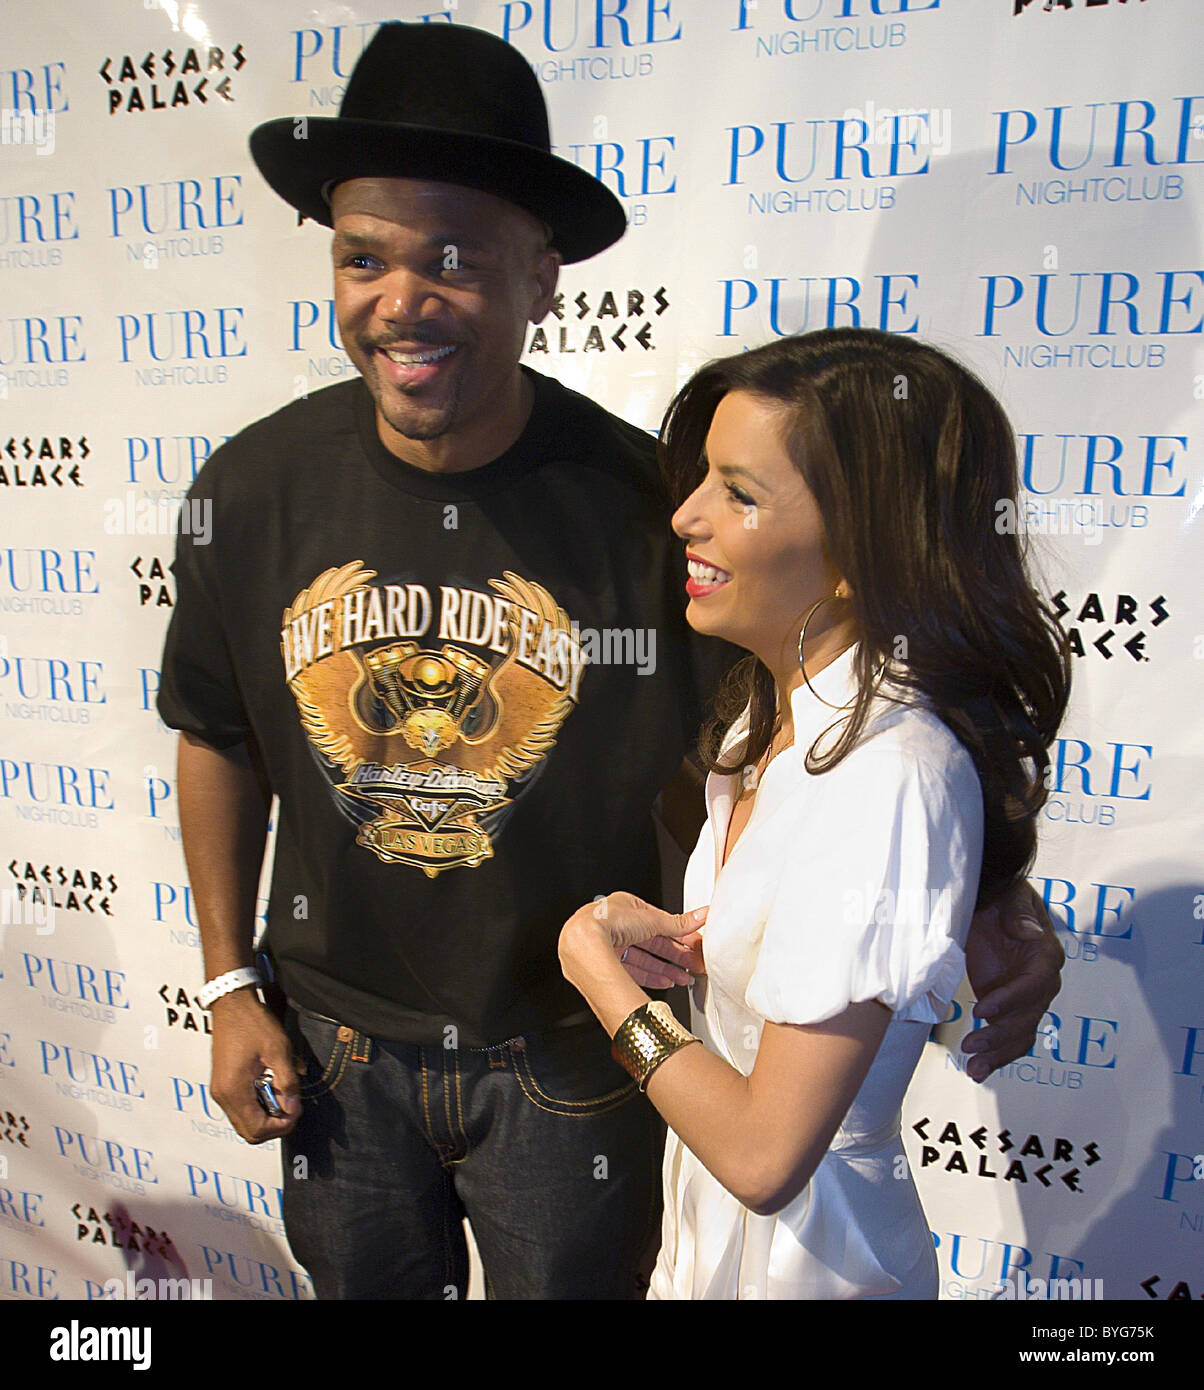 Eva Longoria and Darryl McDaniels AKA DMC of Run DMC celebrate the NBA All-Star Weekend at Pure nightclub in Caesars - Stock Image